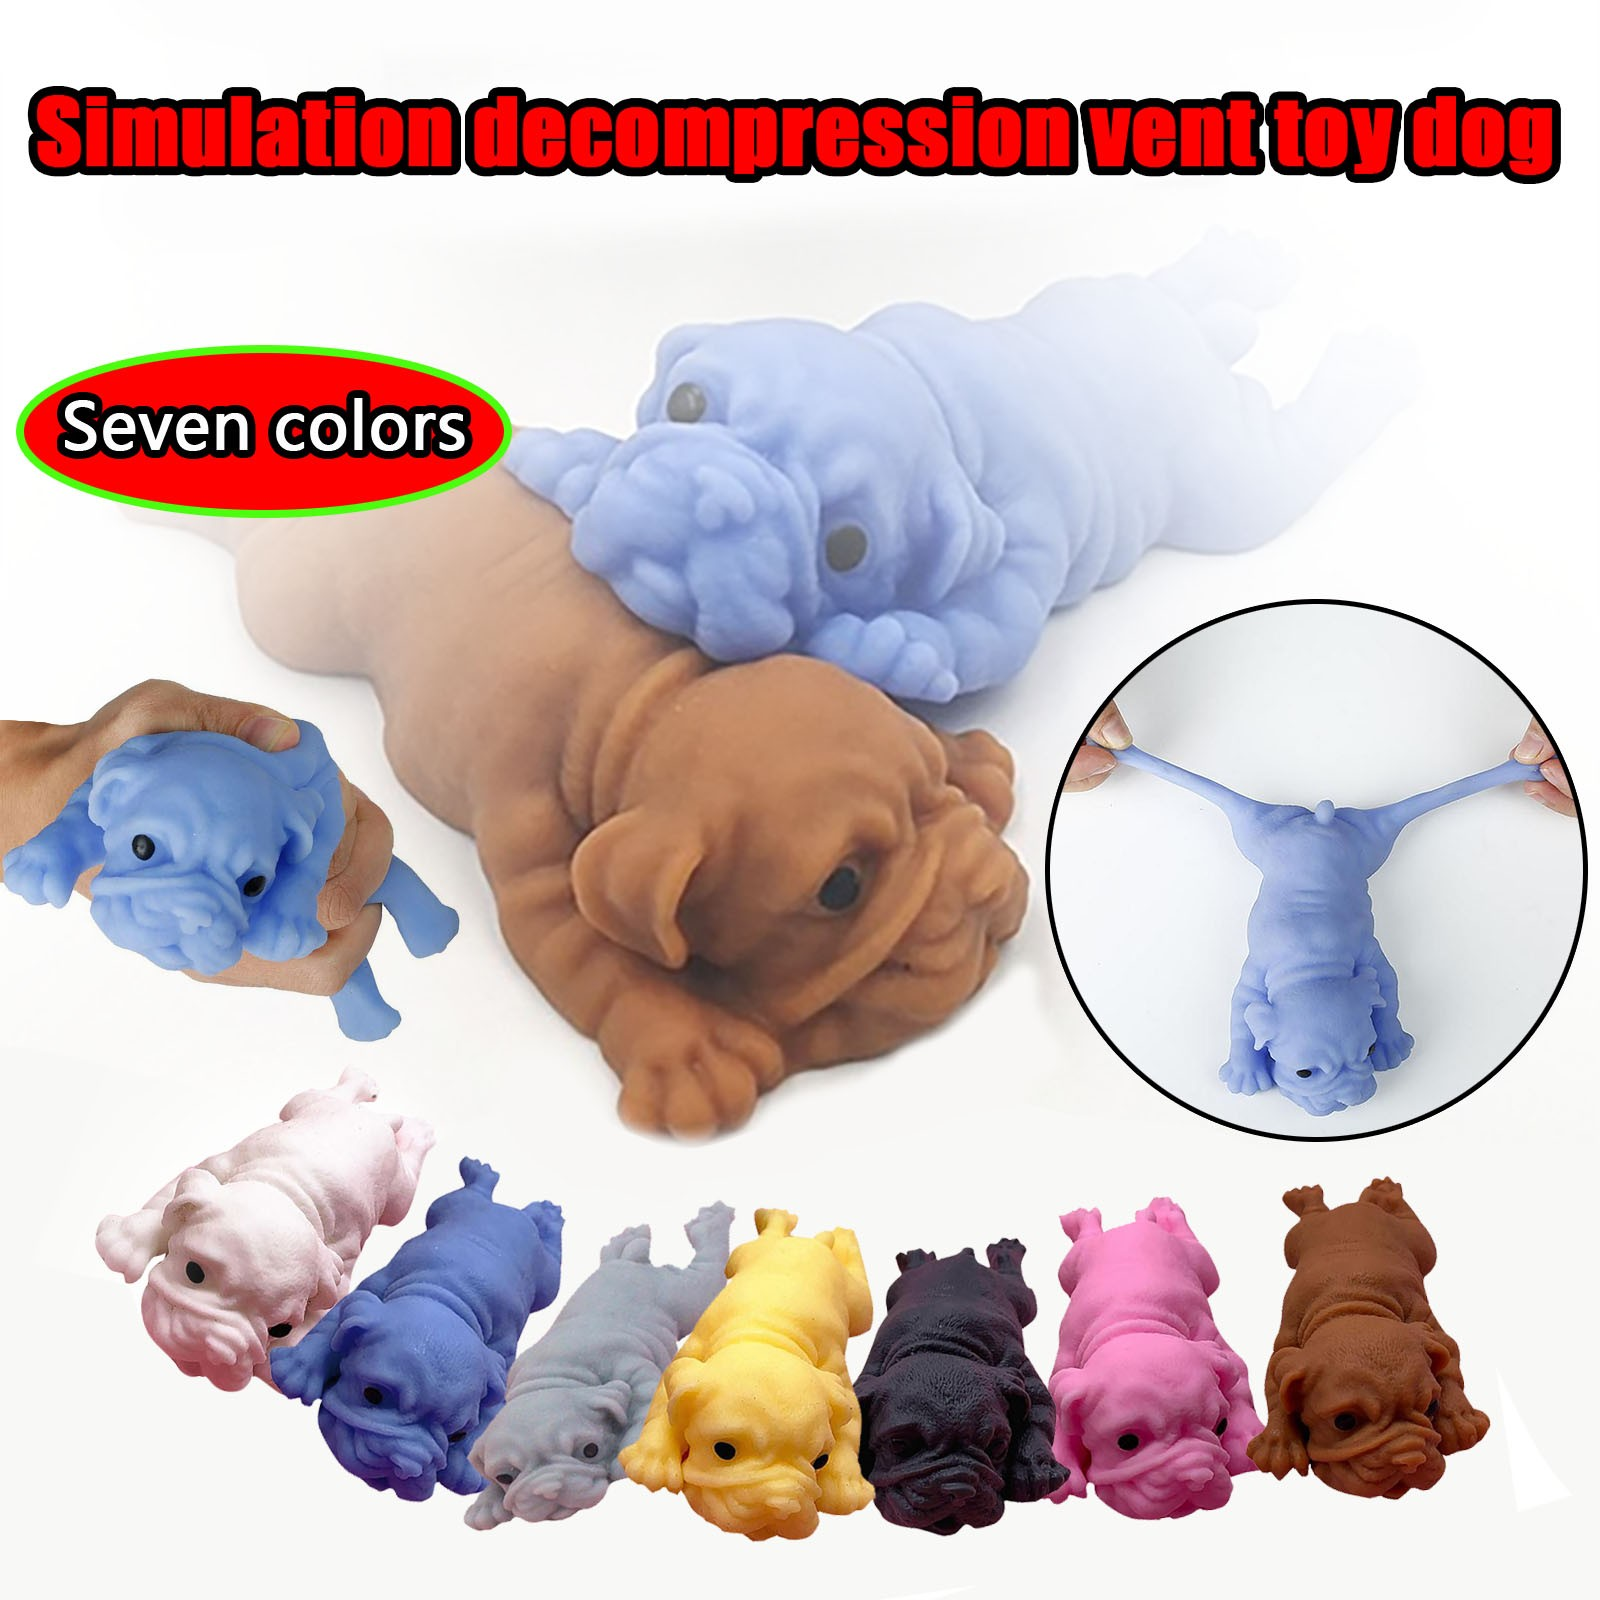 Toy Squishy Anime Fidget-Toys Simulation-Decompression Anti-Stress Creative for Men And img1